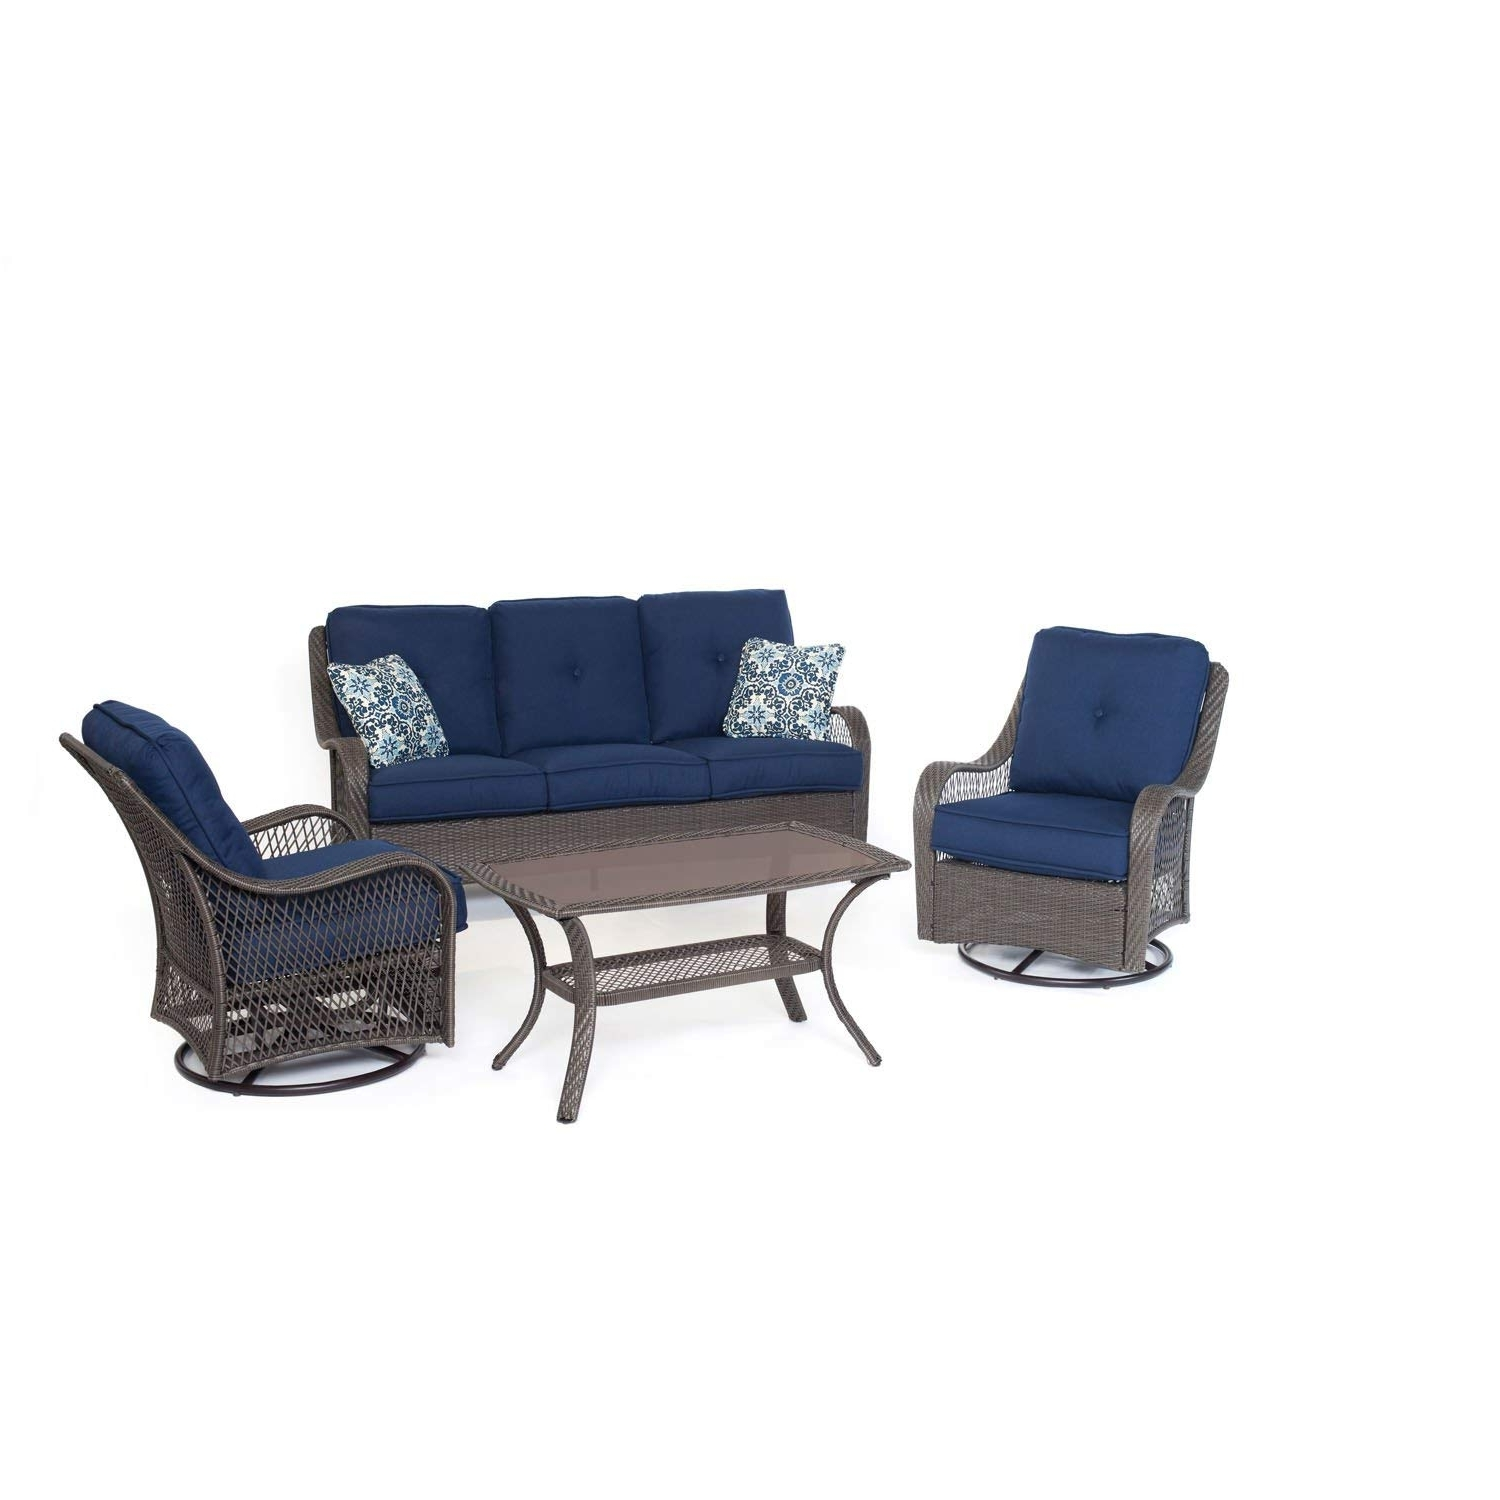 Amazon : Cambridge 4 Piece Hanover Outdoor Merritt All Weather Throughout 2017 Patio Conversation Sets With Blue Cushions (View 6 of 15)